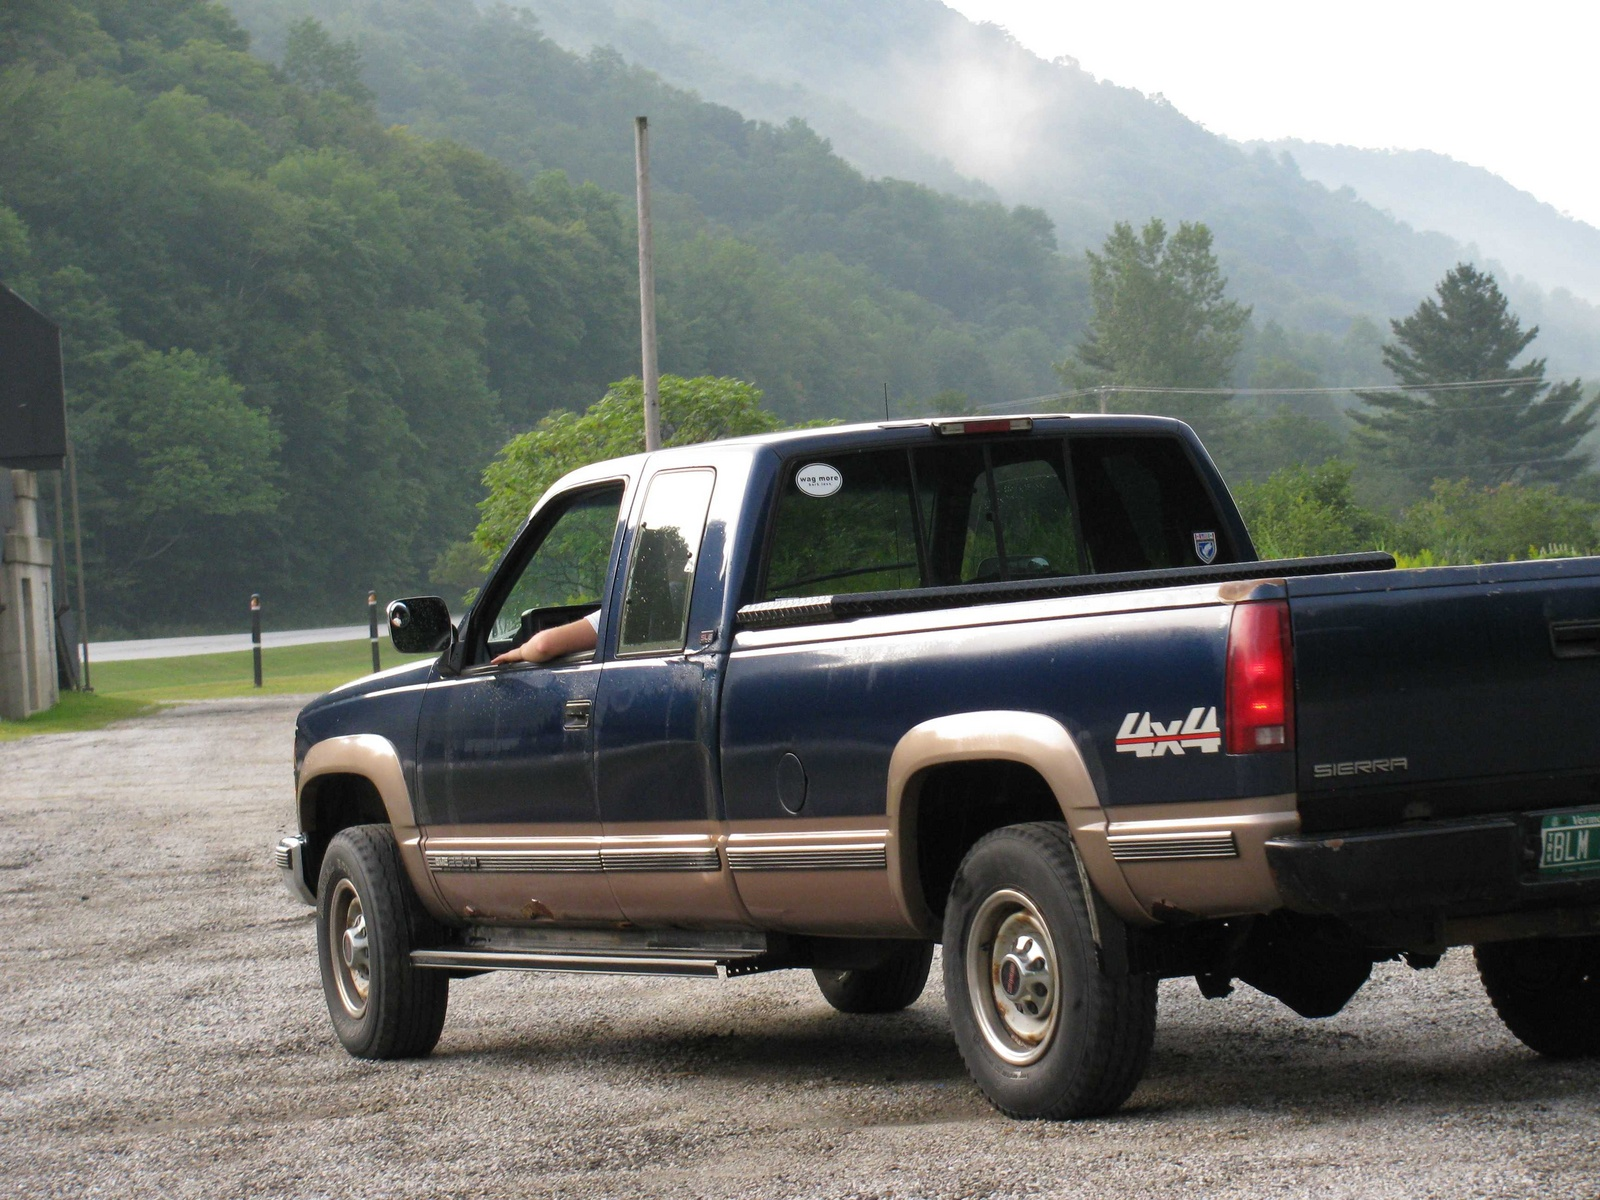 1994 GMC Sierra 2500 - Information and photos - Zomb Drive